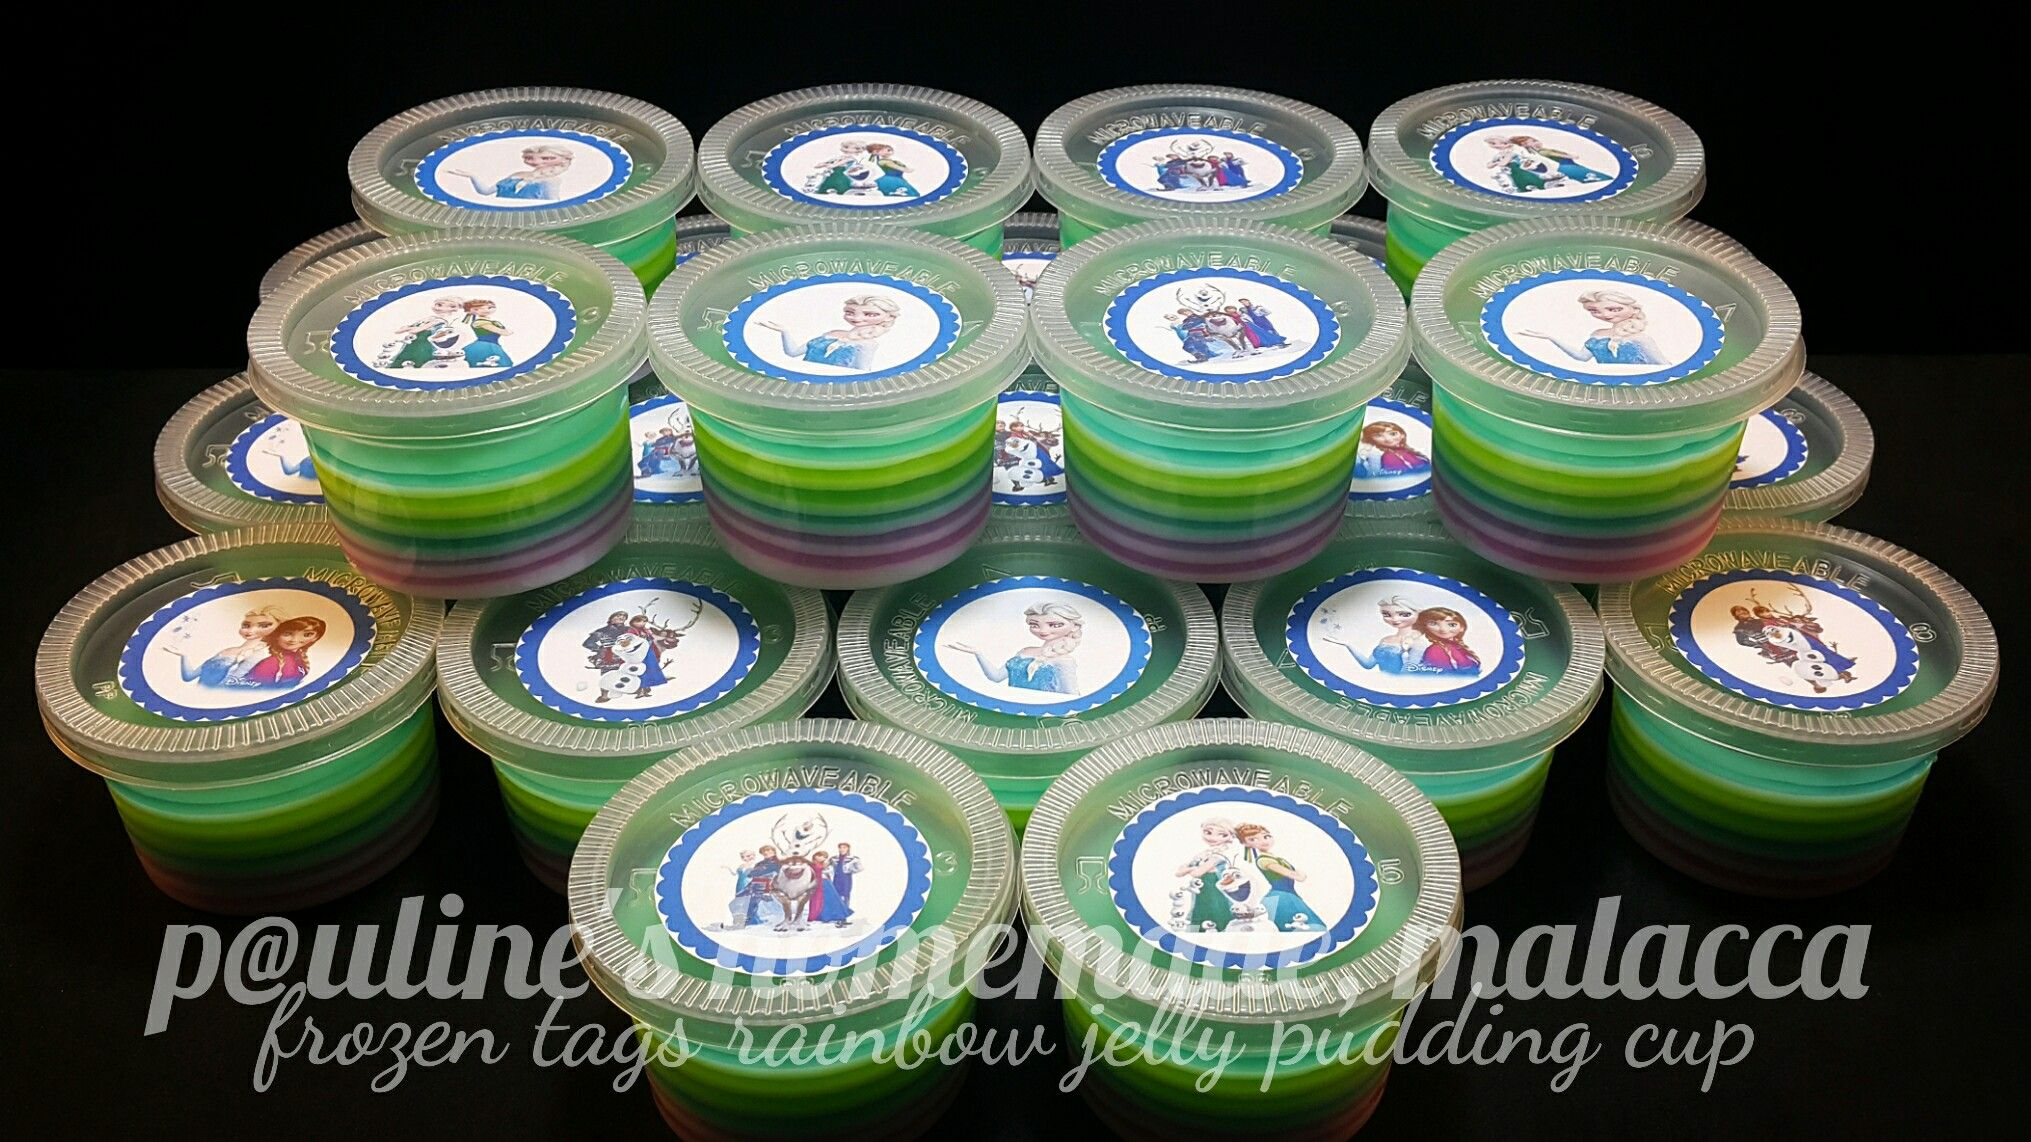 Rainbow Jelly In Pudding Cup - Jelly Cup Egg Push